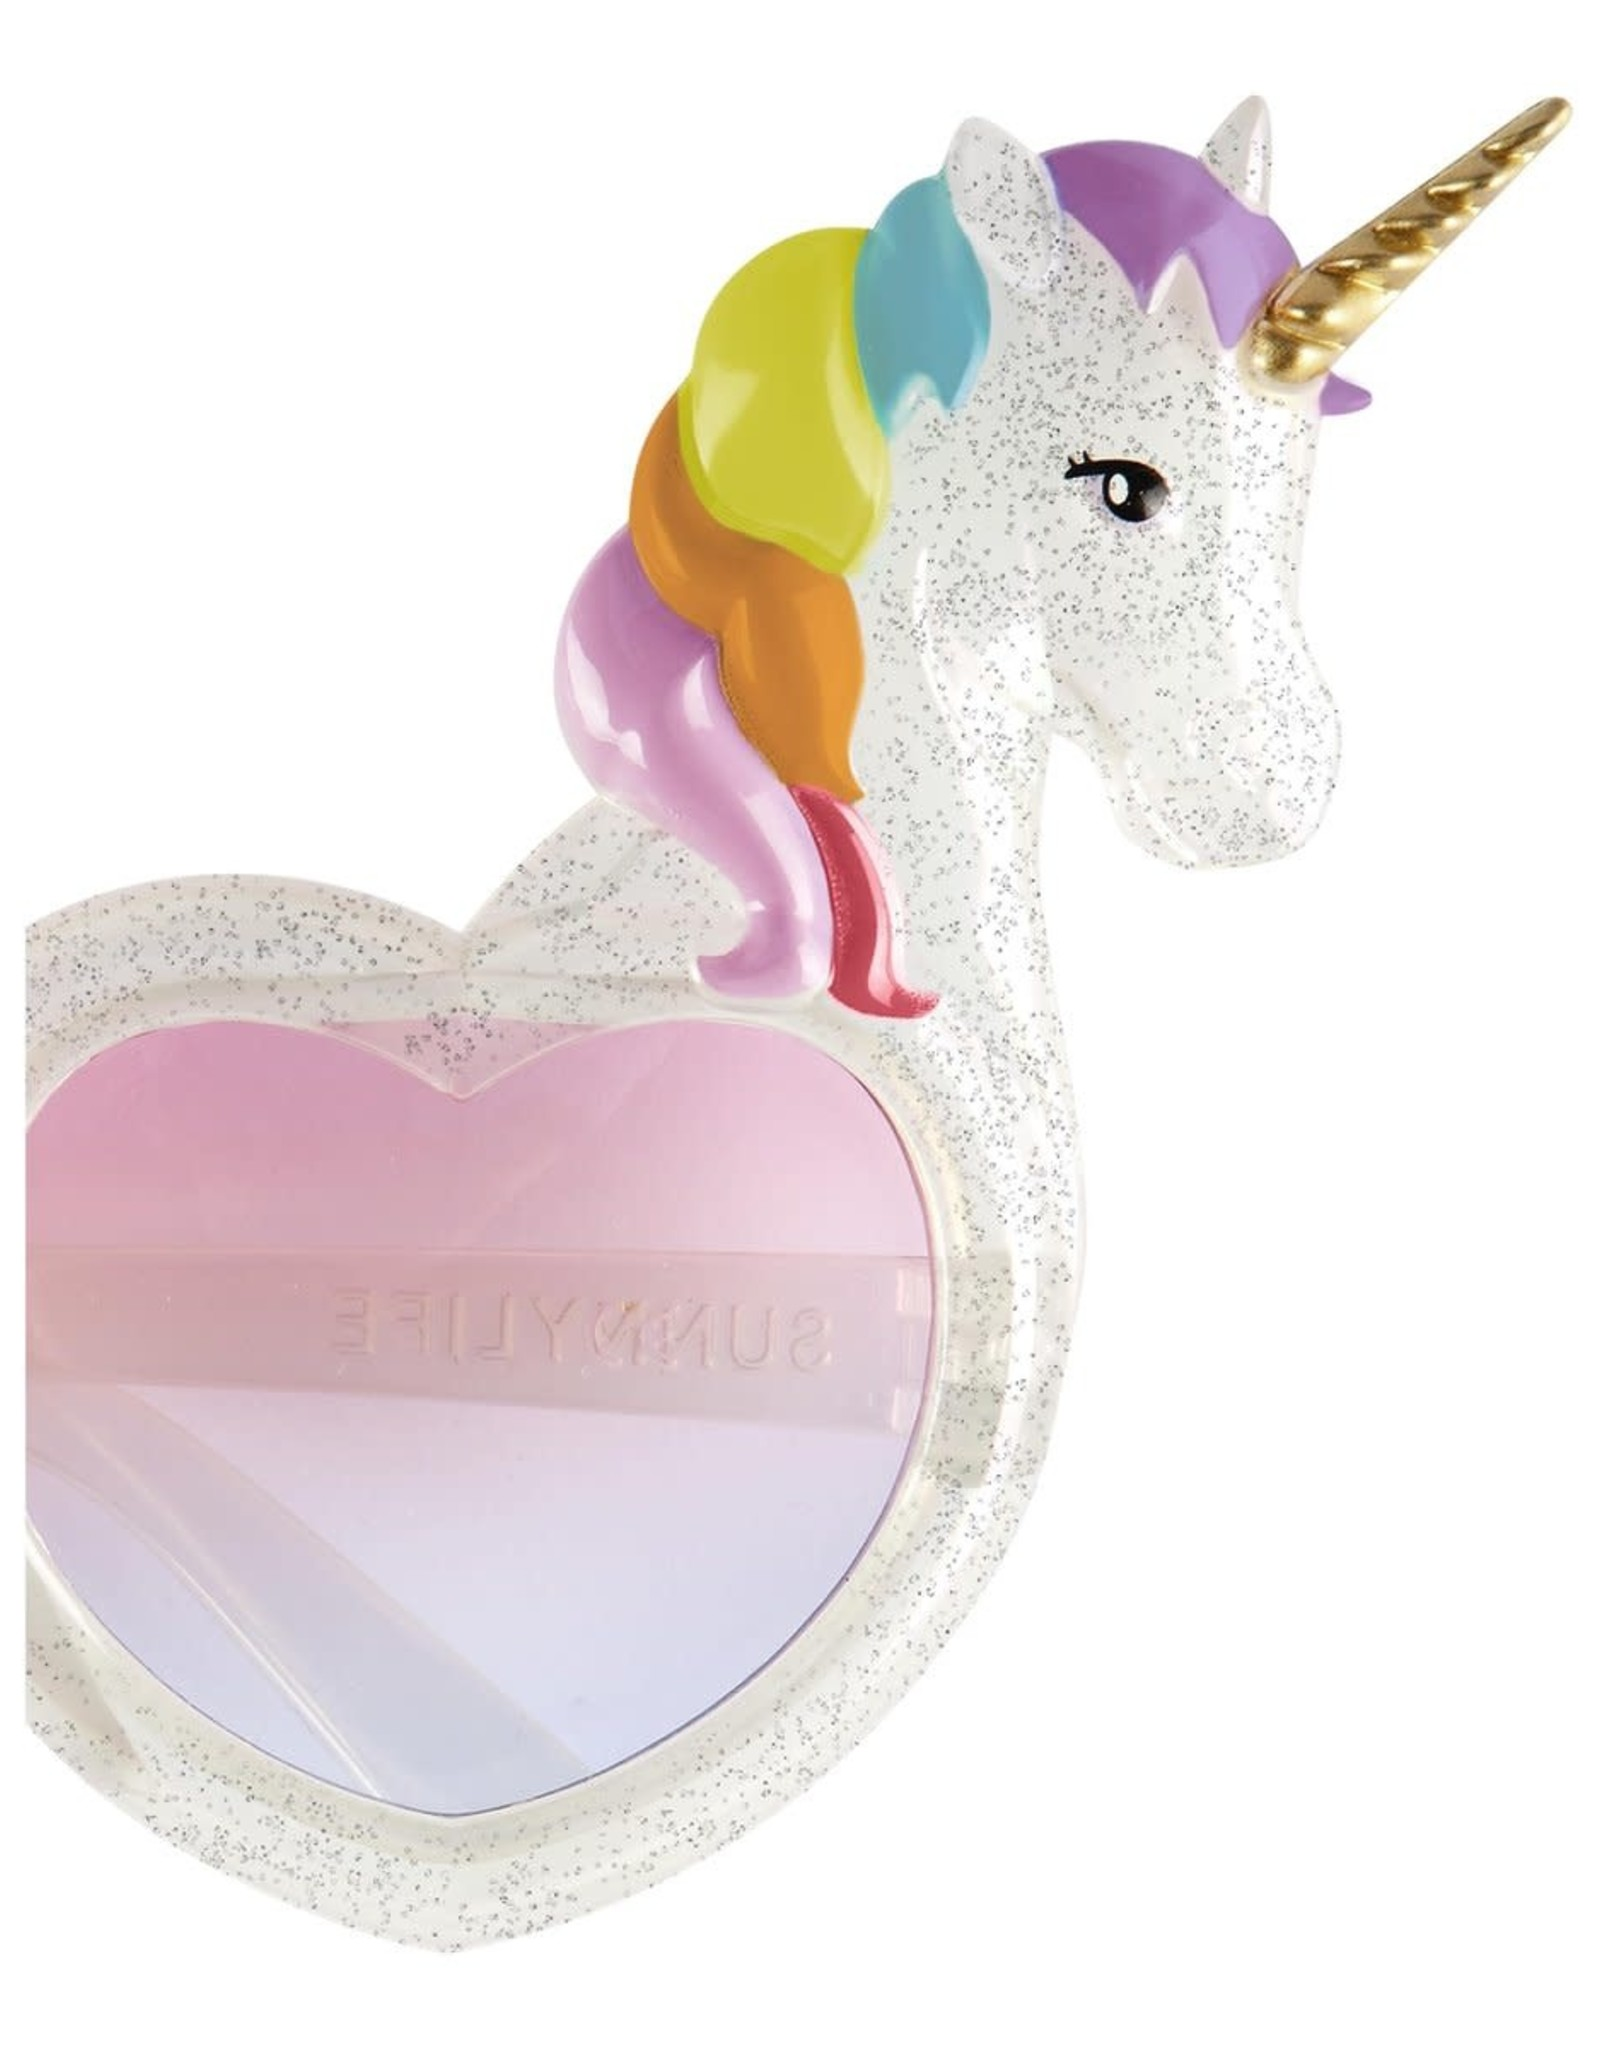 Sunnylife unicorn sunnies- kids